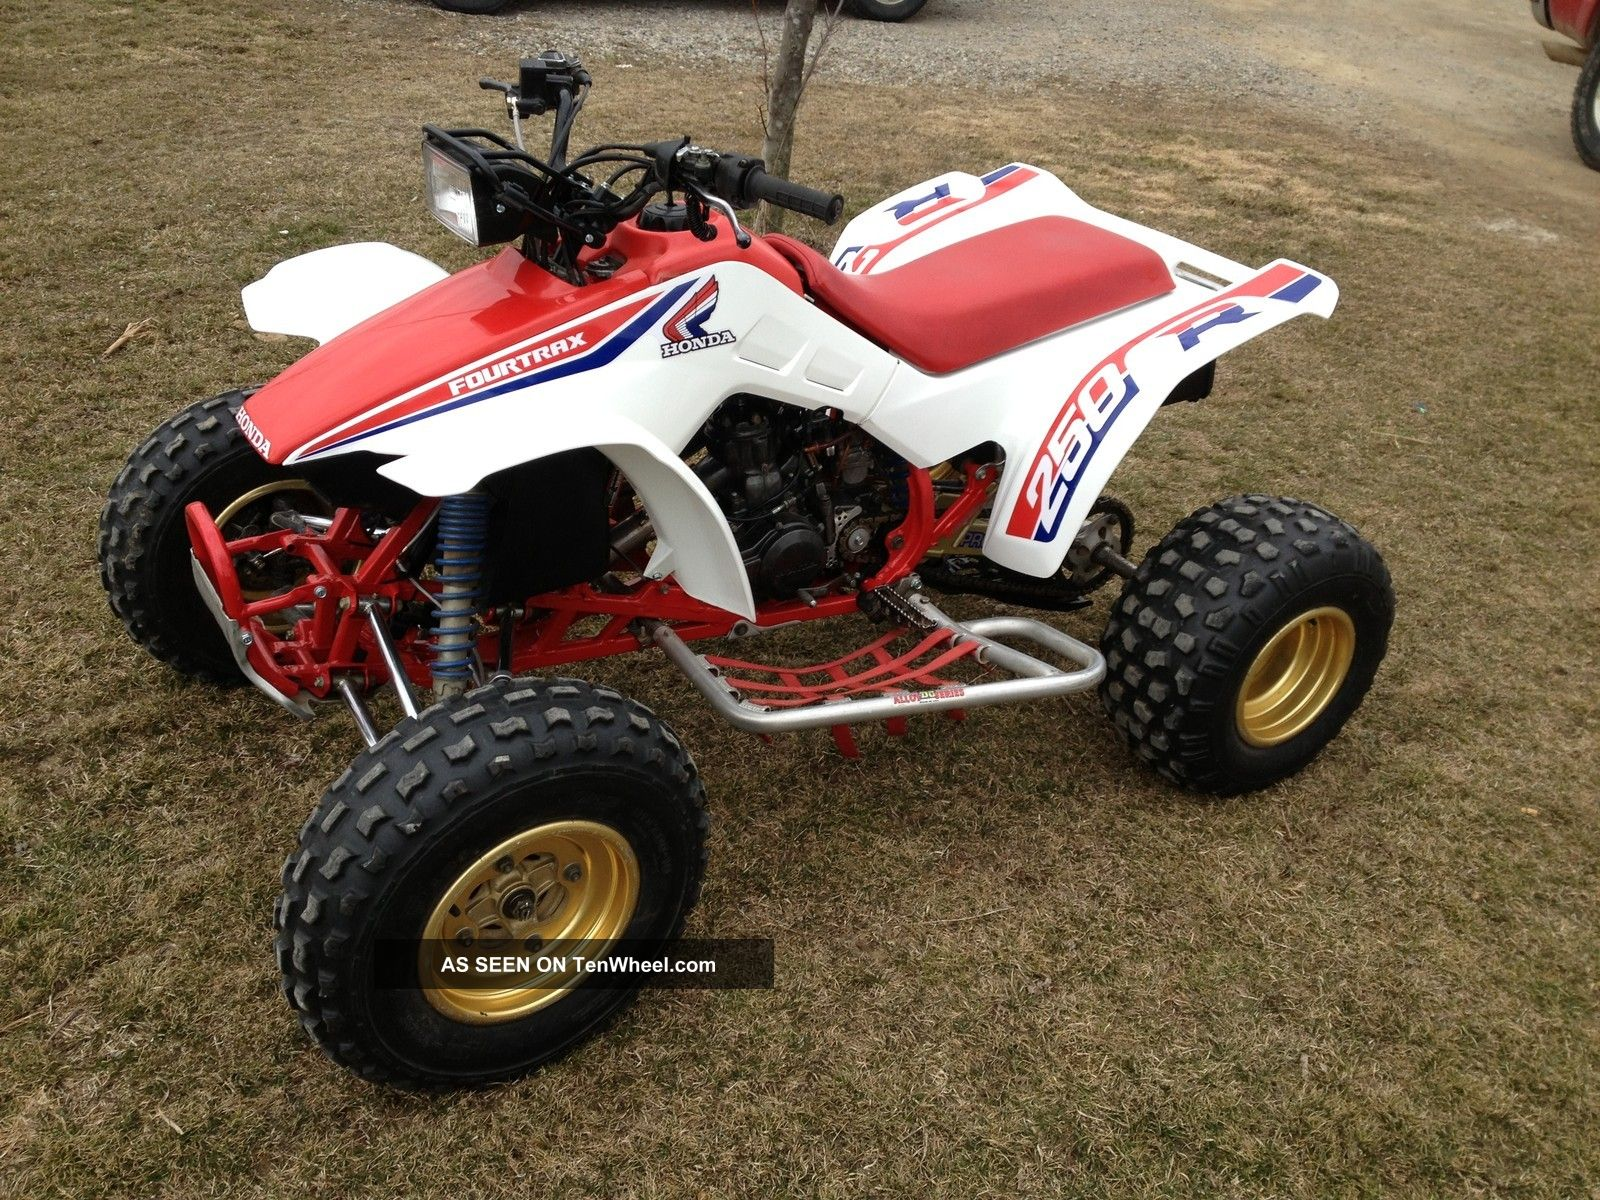 1986 Honda Trx 250r Honda photo